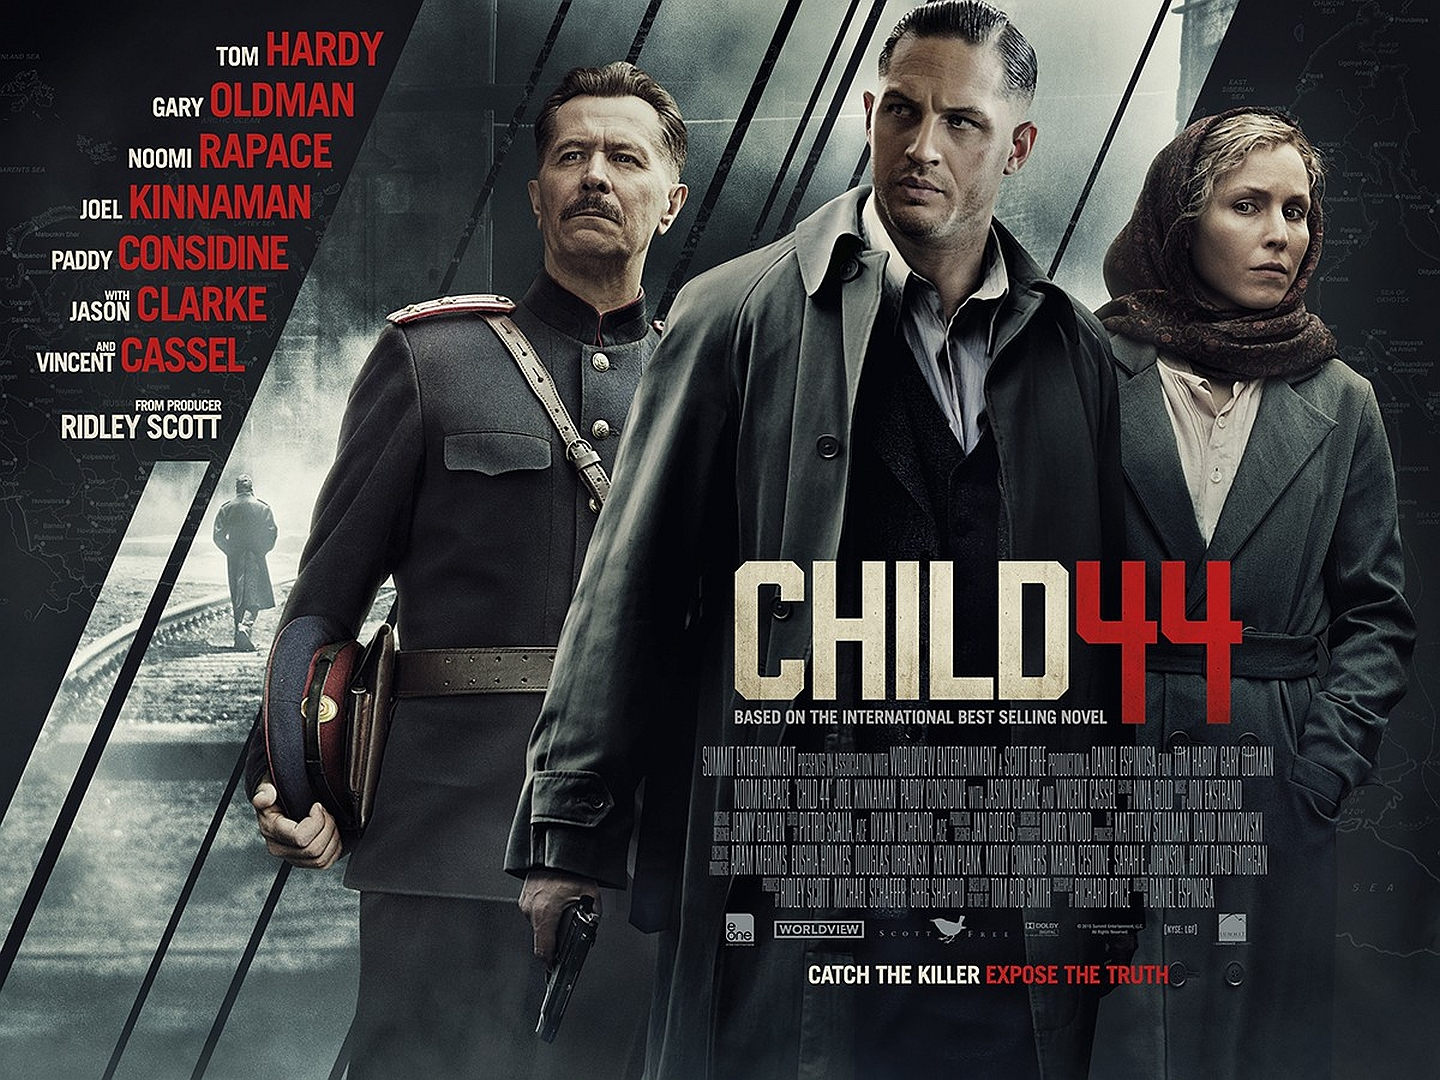 Child 44 Wallpaper and Background Image | 1440x1080 | ID:590016 ...